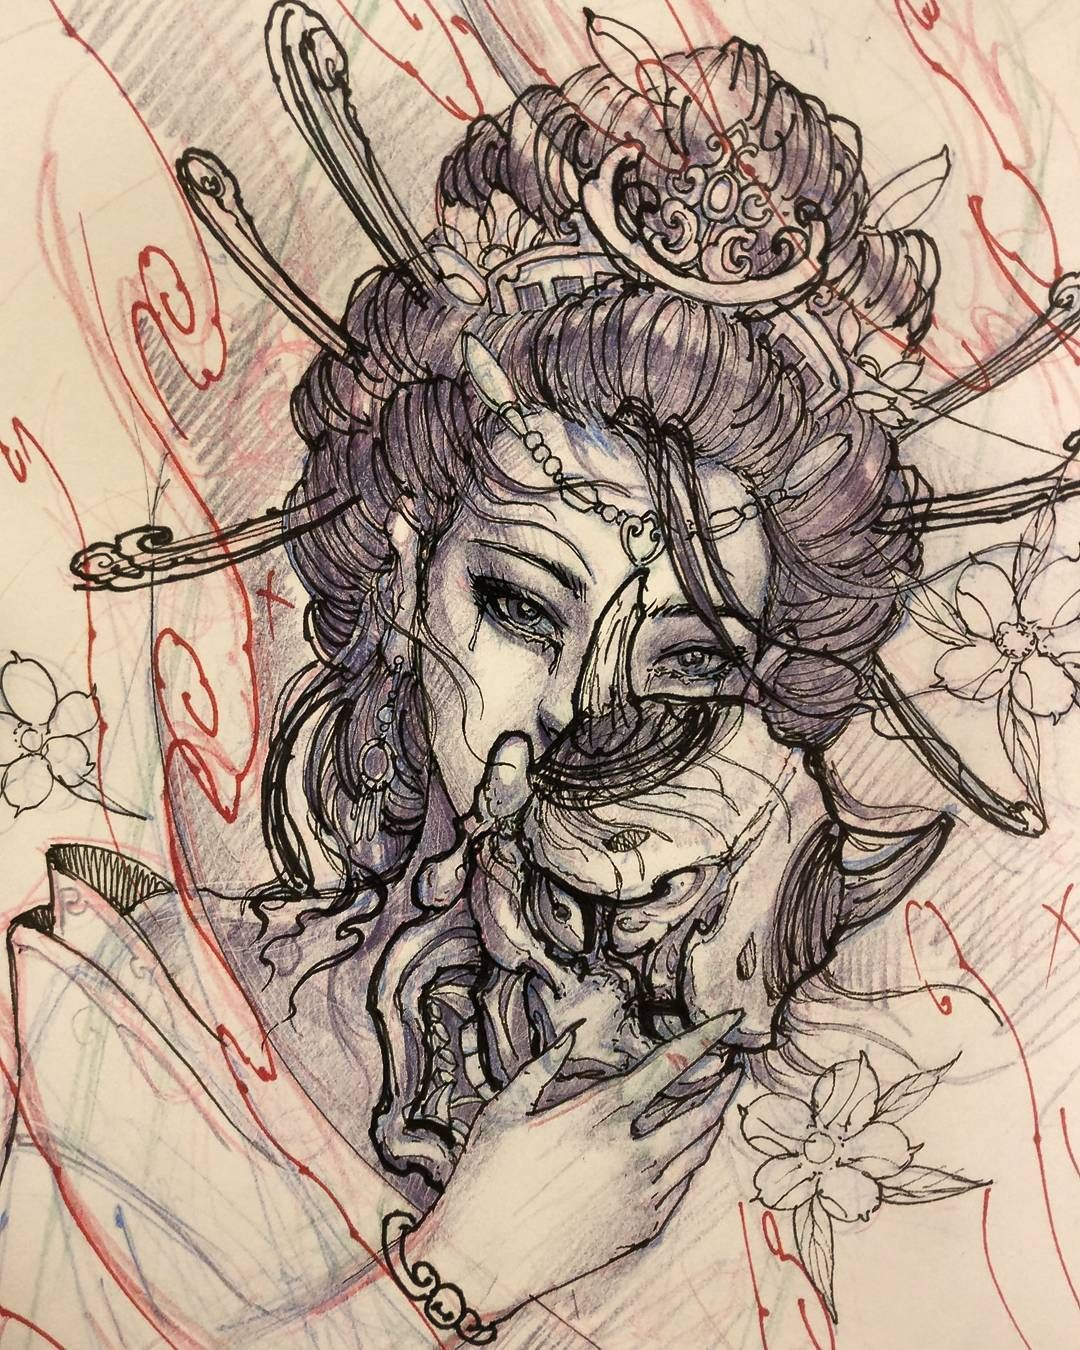 Sketch For A Japanese Sleeve: Geisha Holding Hannya Sketch. #chronicink #asiantattoo